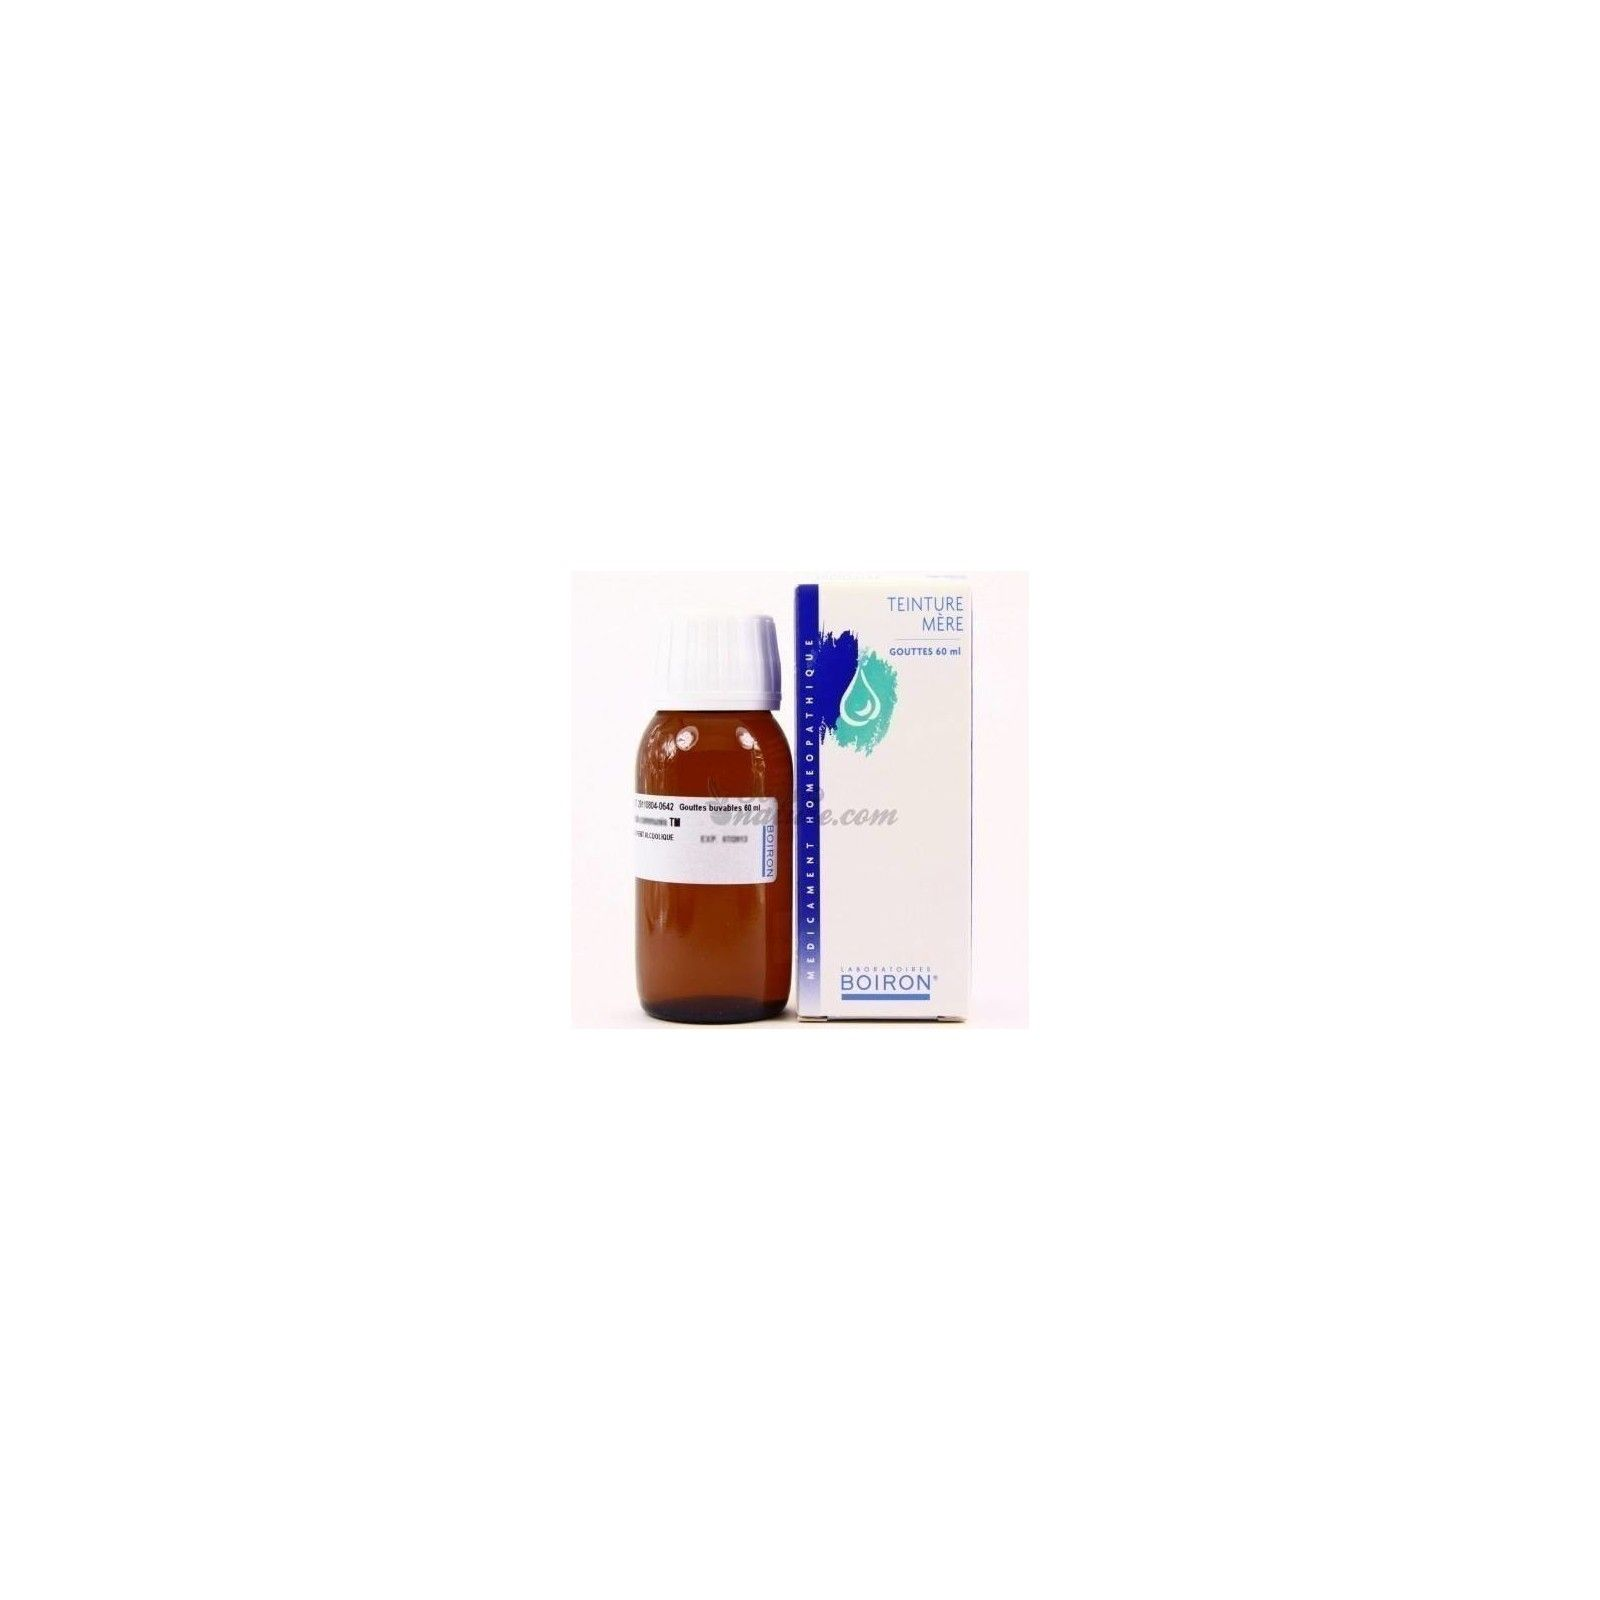 Boiron Dilutions 30ml Complexe for CA22.66